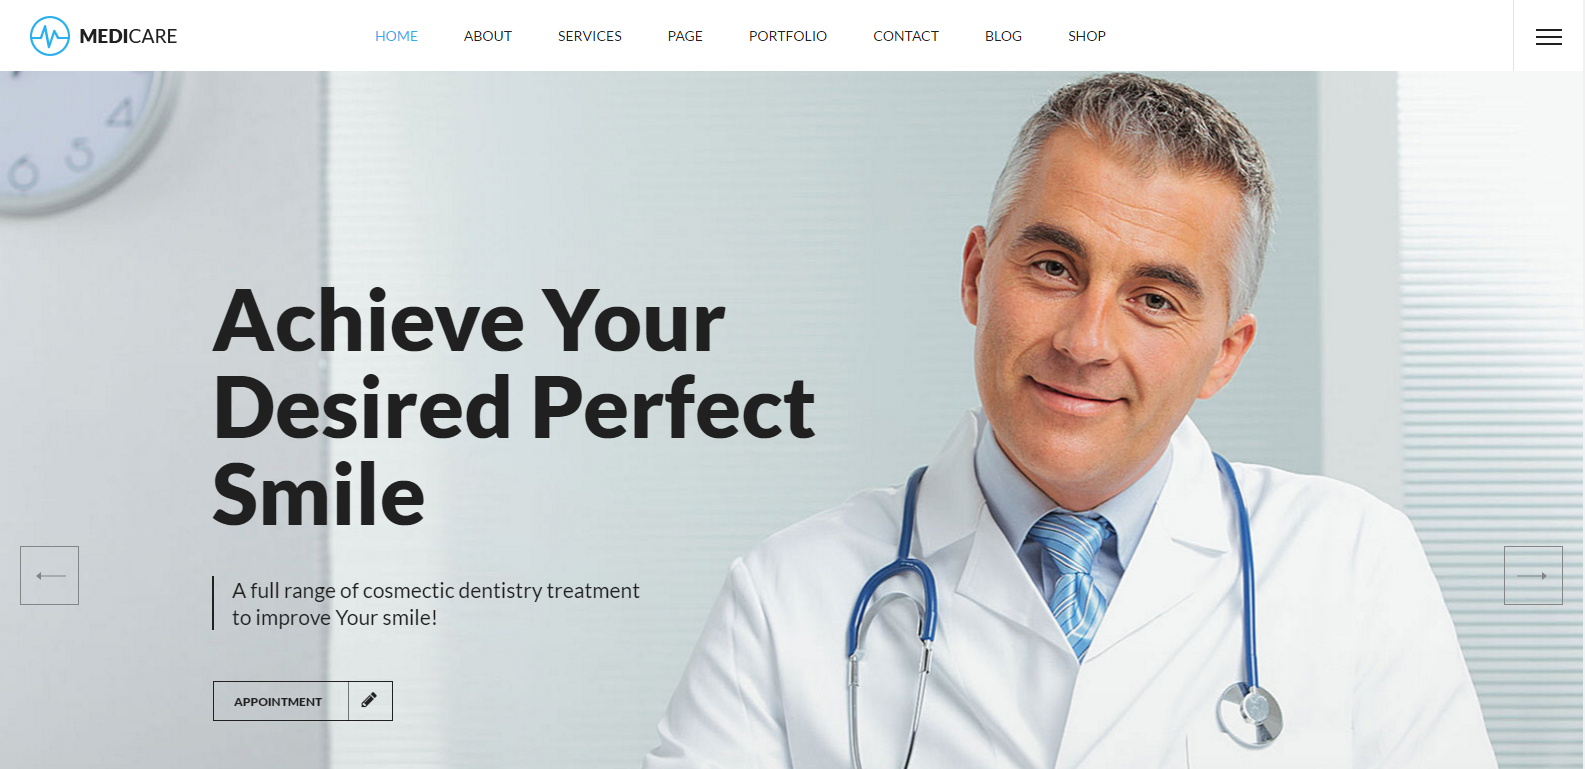 medicare wordpress theme - medical theme wordpress - health theme wordpress - healthcare theme wordpress - medical center theme - best medical wordpress theme - best health wordpress theme